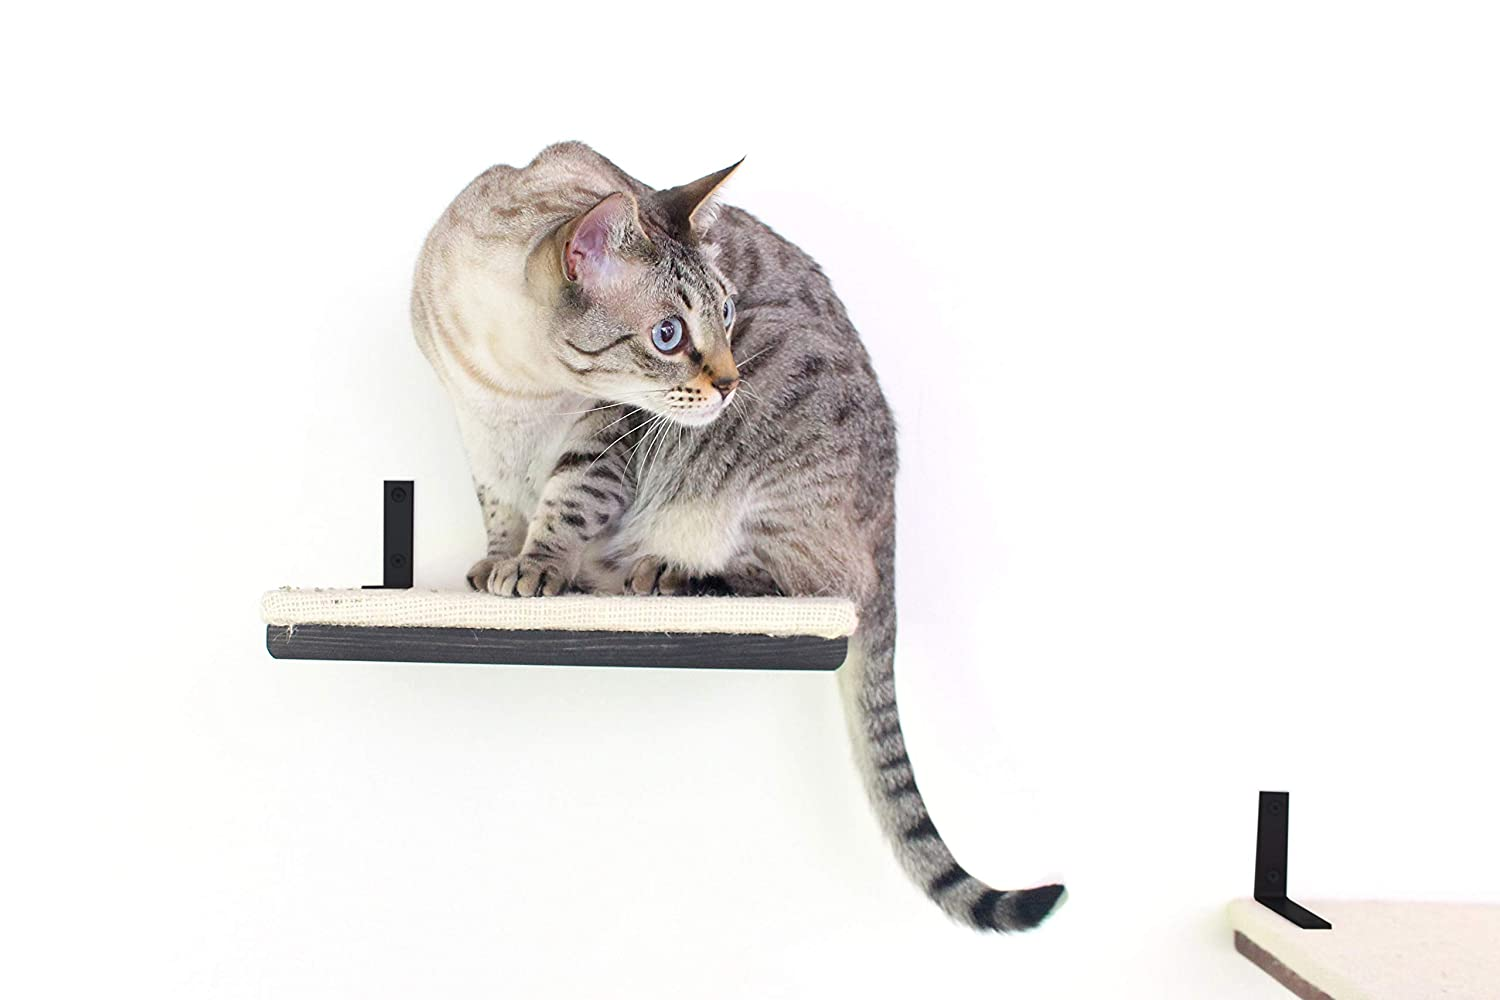 CatastrophiCreations 12 Shelf with Burlap Fabric - Handcrafted Wall-mounted Cat Furniture